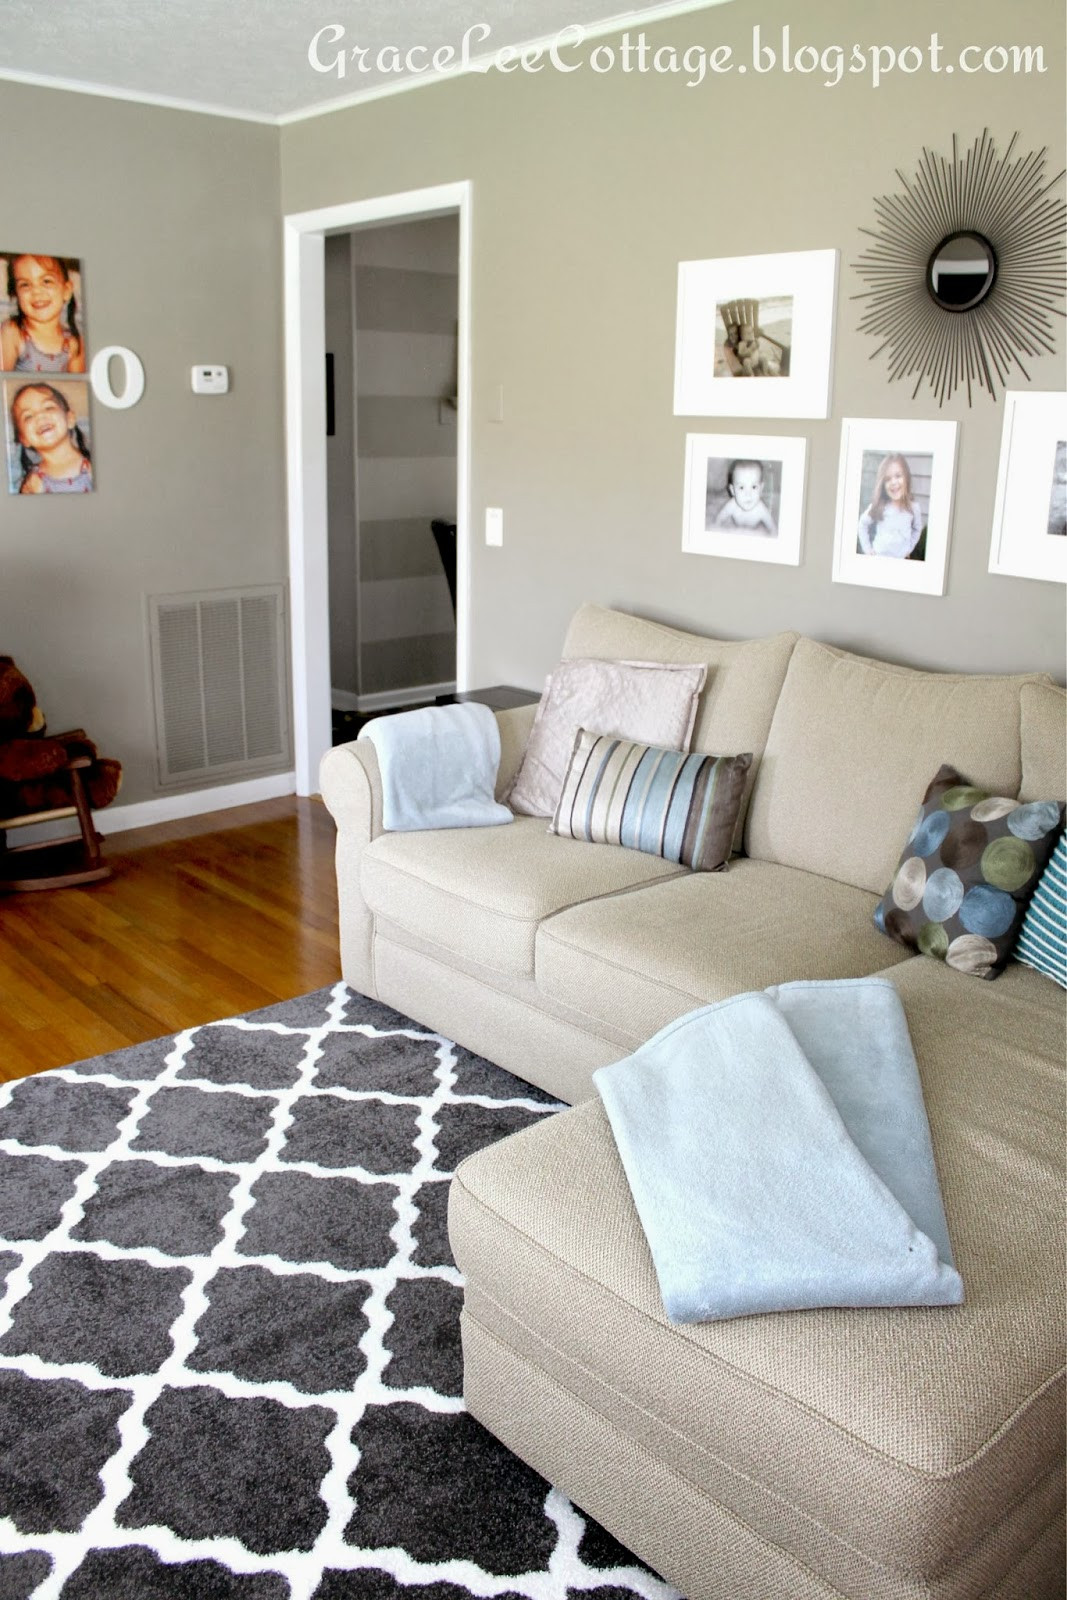 Best ideas about Living Room Rug Ideas . Save or Pin Grace Lee Cottage New living room rug Now.